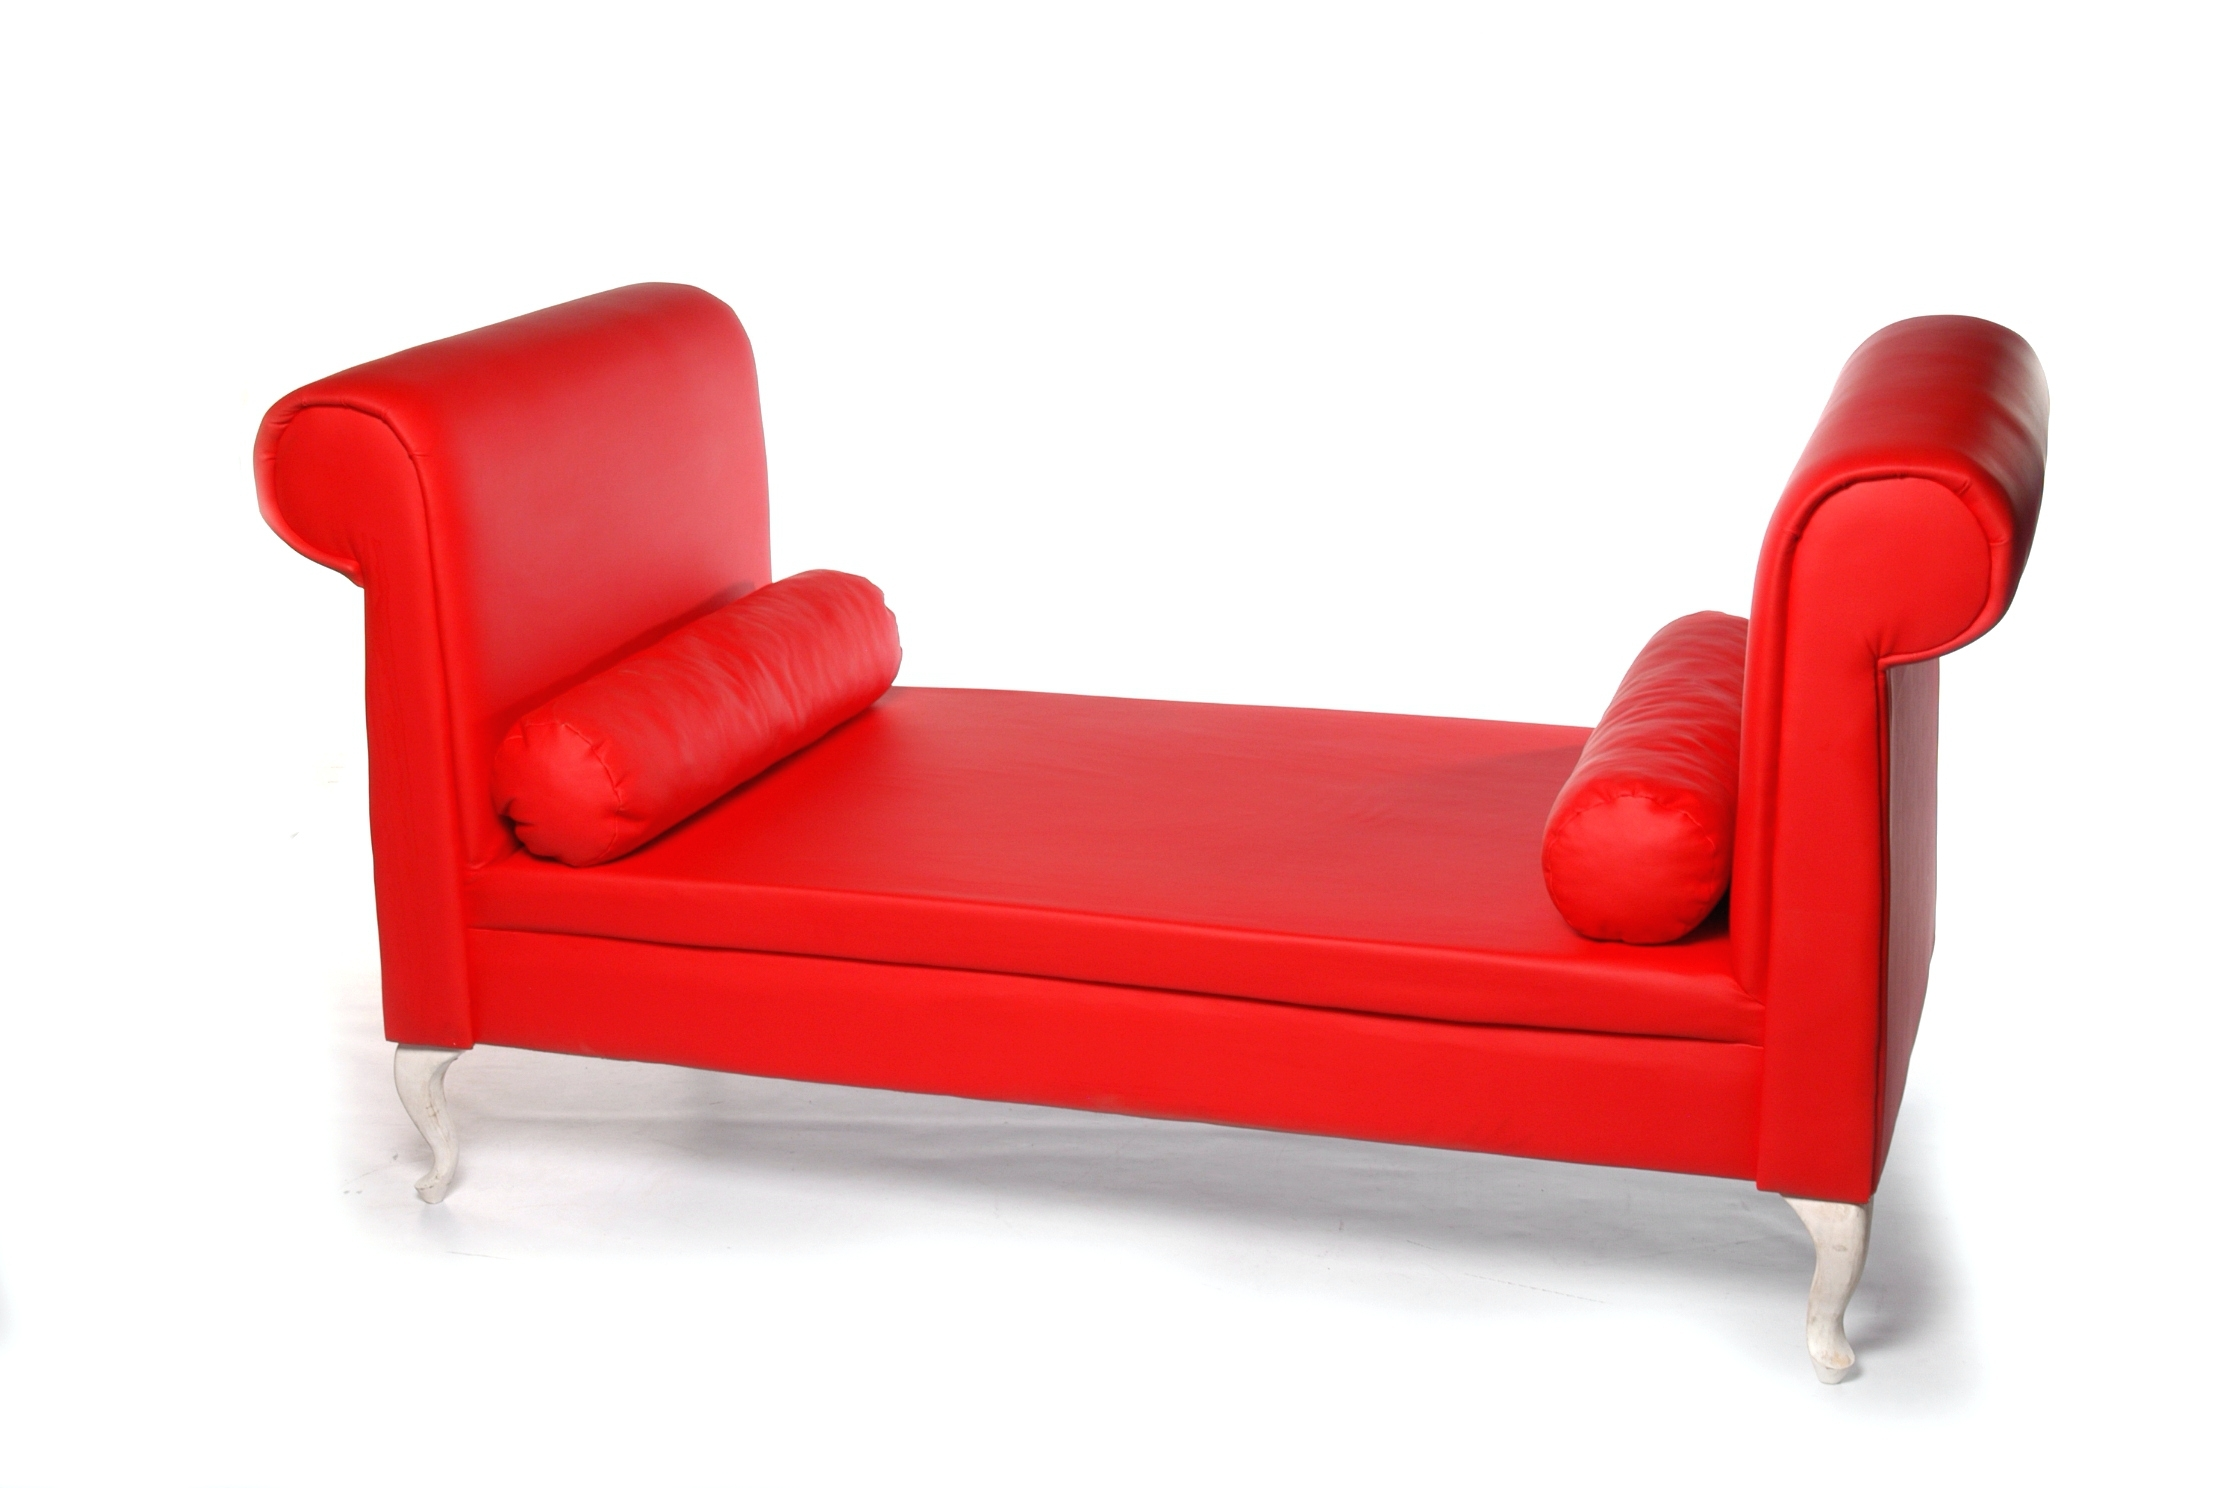 Chaise Lounge Chairs Without Arms Pertaining To Most Recently Released Chaise Lounge Chair Slipcovers Chaise Lounge Chair With Arms (View 4 of 15)